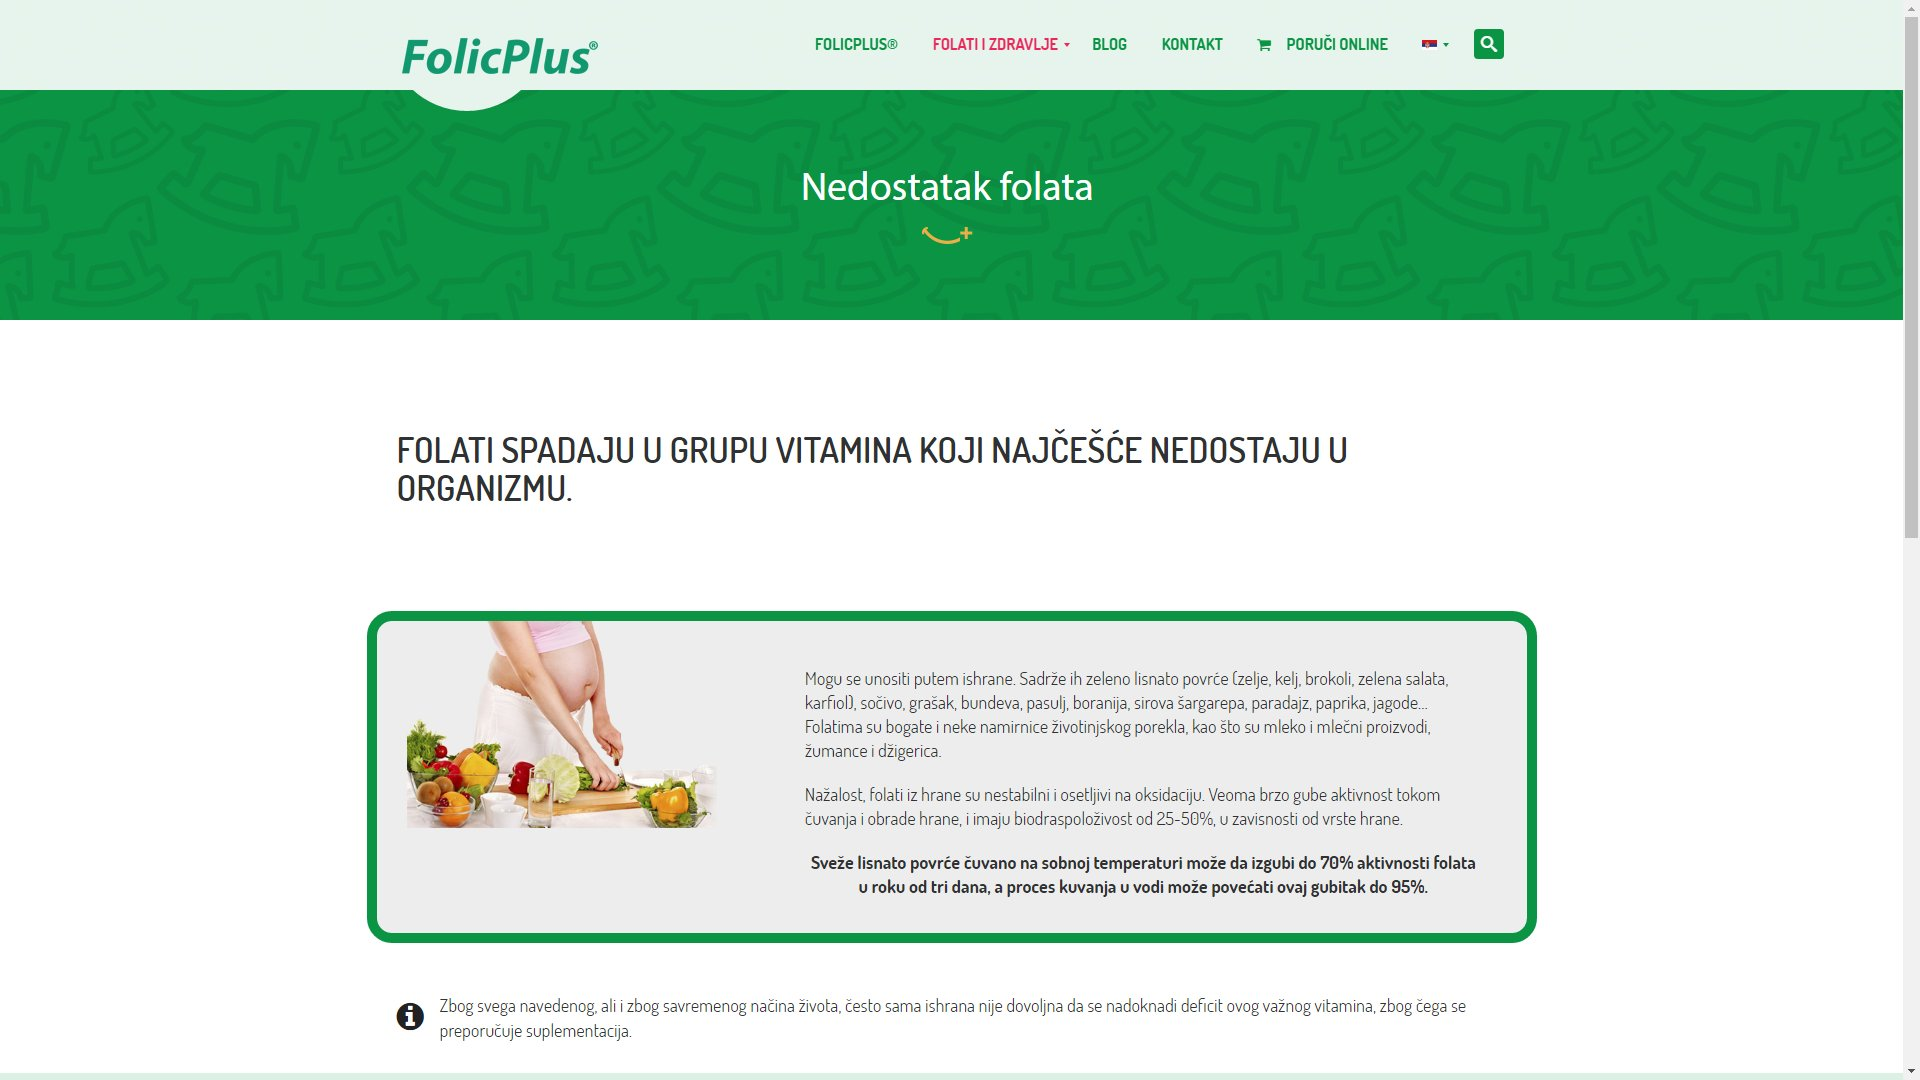 Folic Plus website - ss6